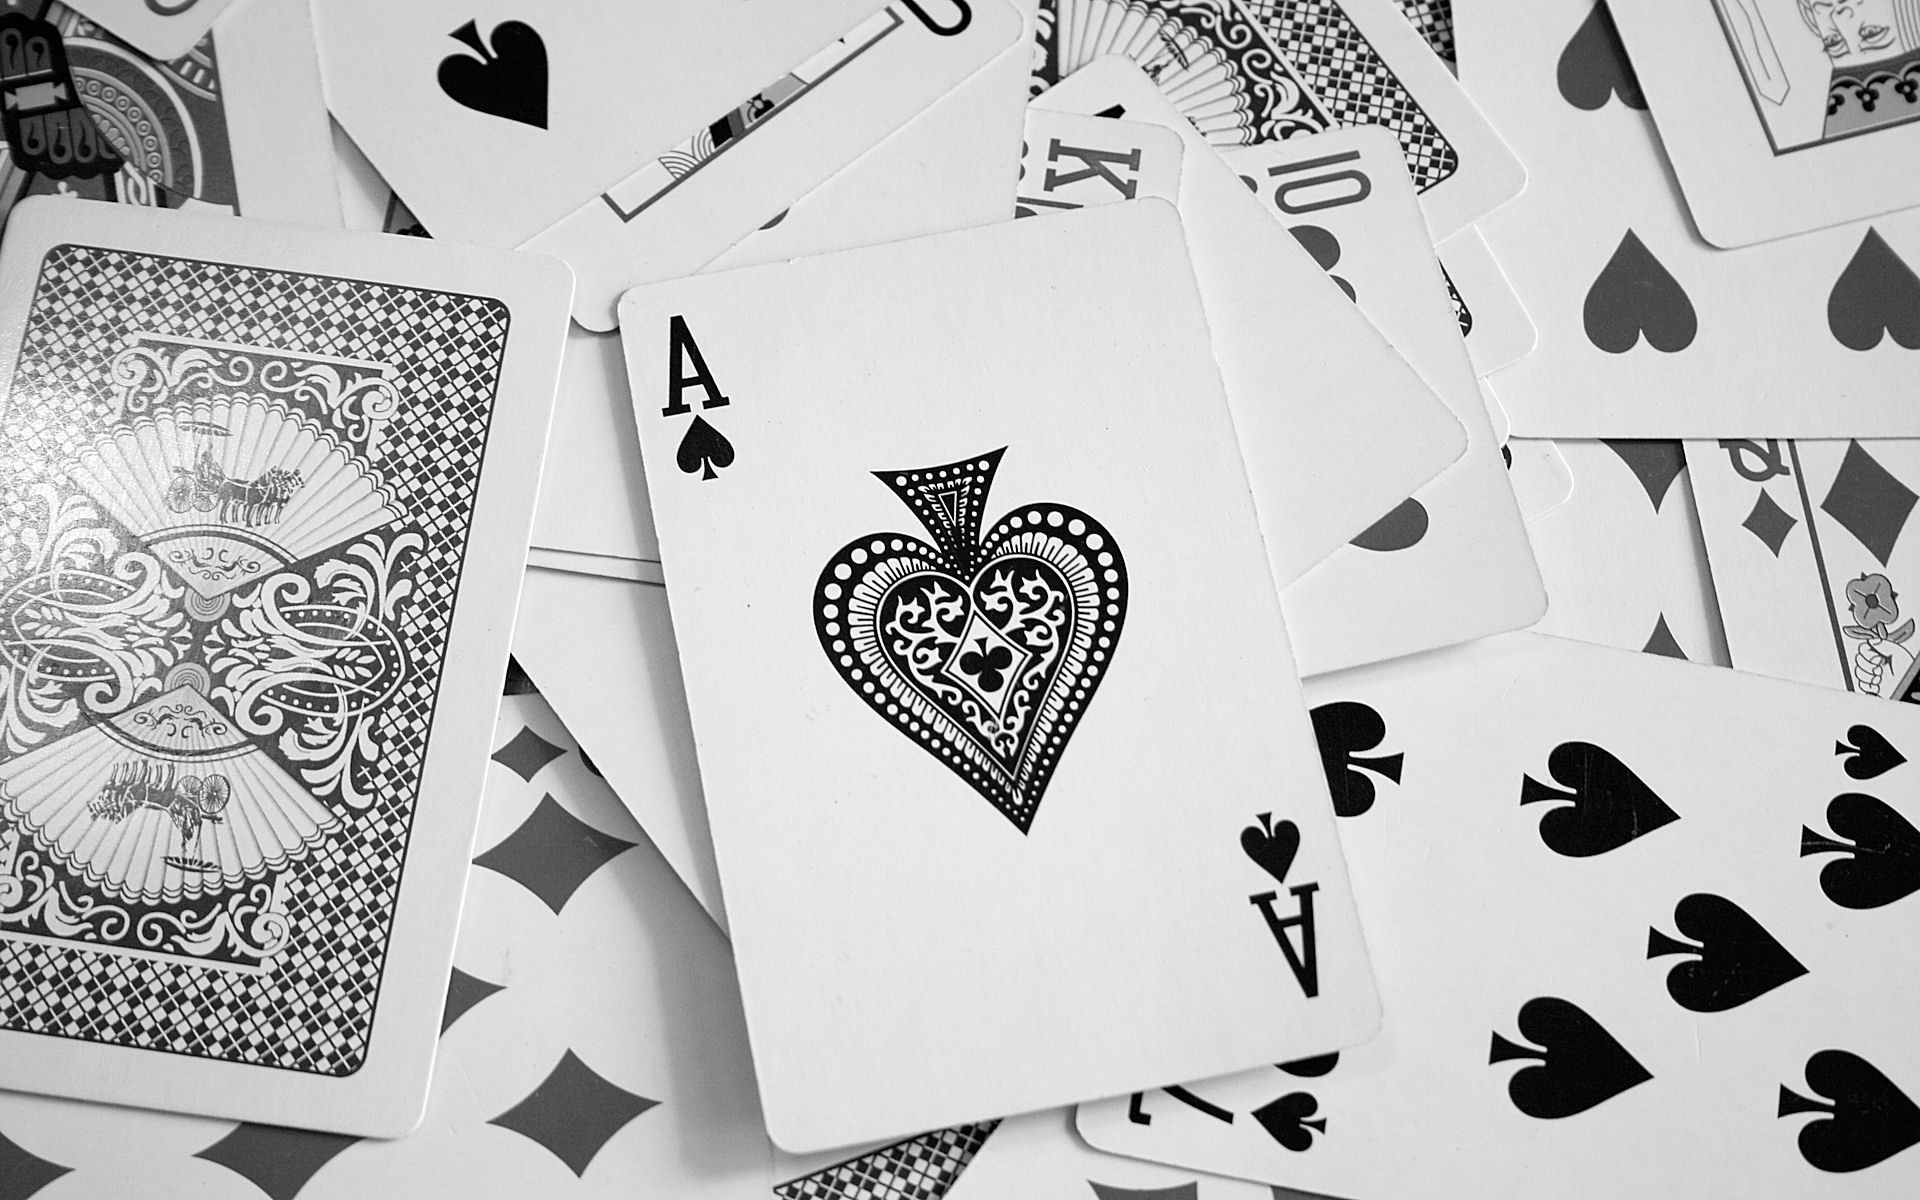 Res: 1920x1200, Ace cards karty pik poker wallpaper